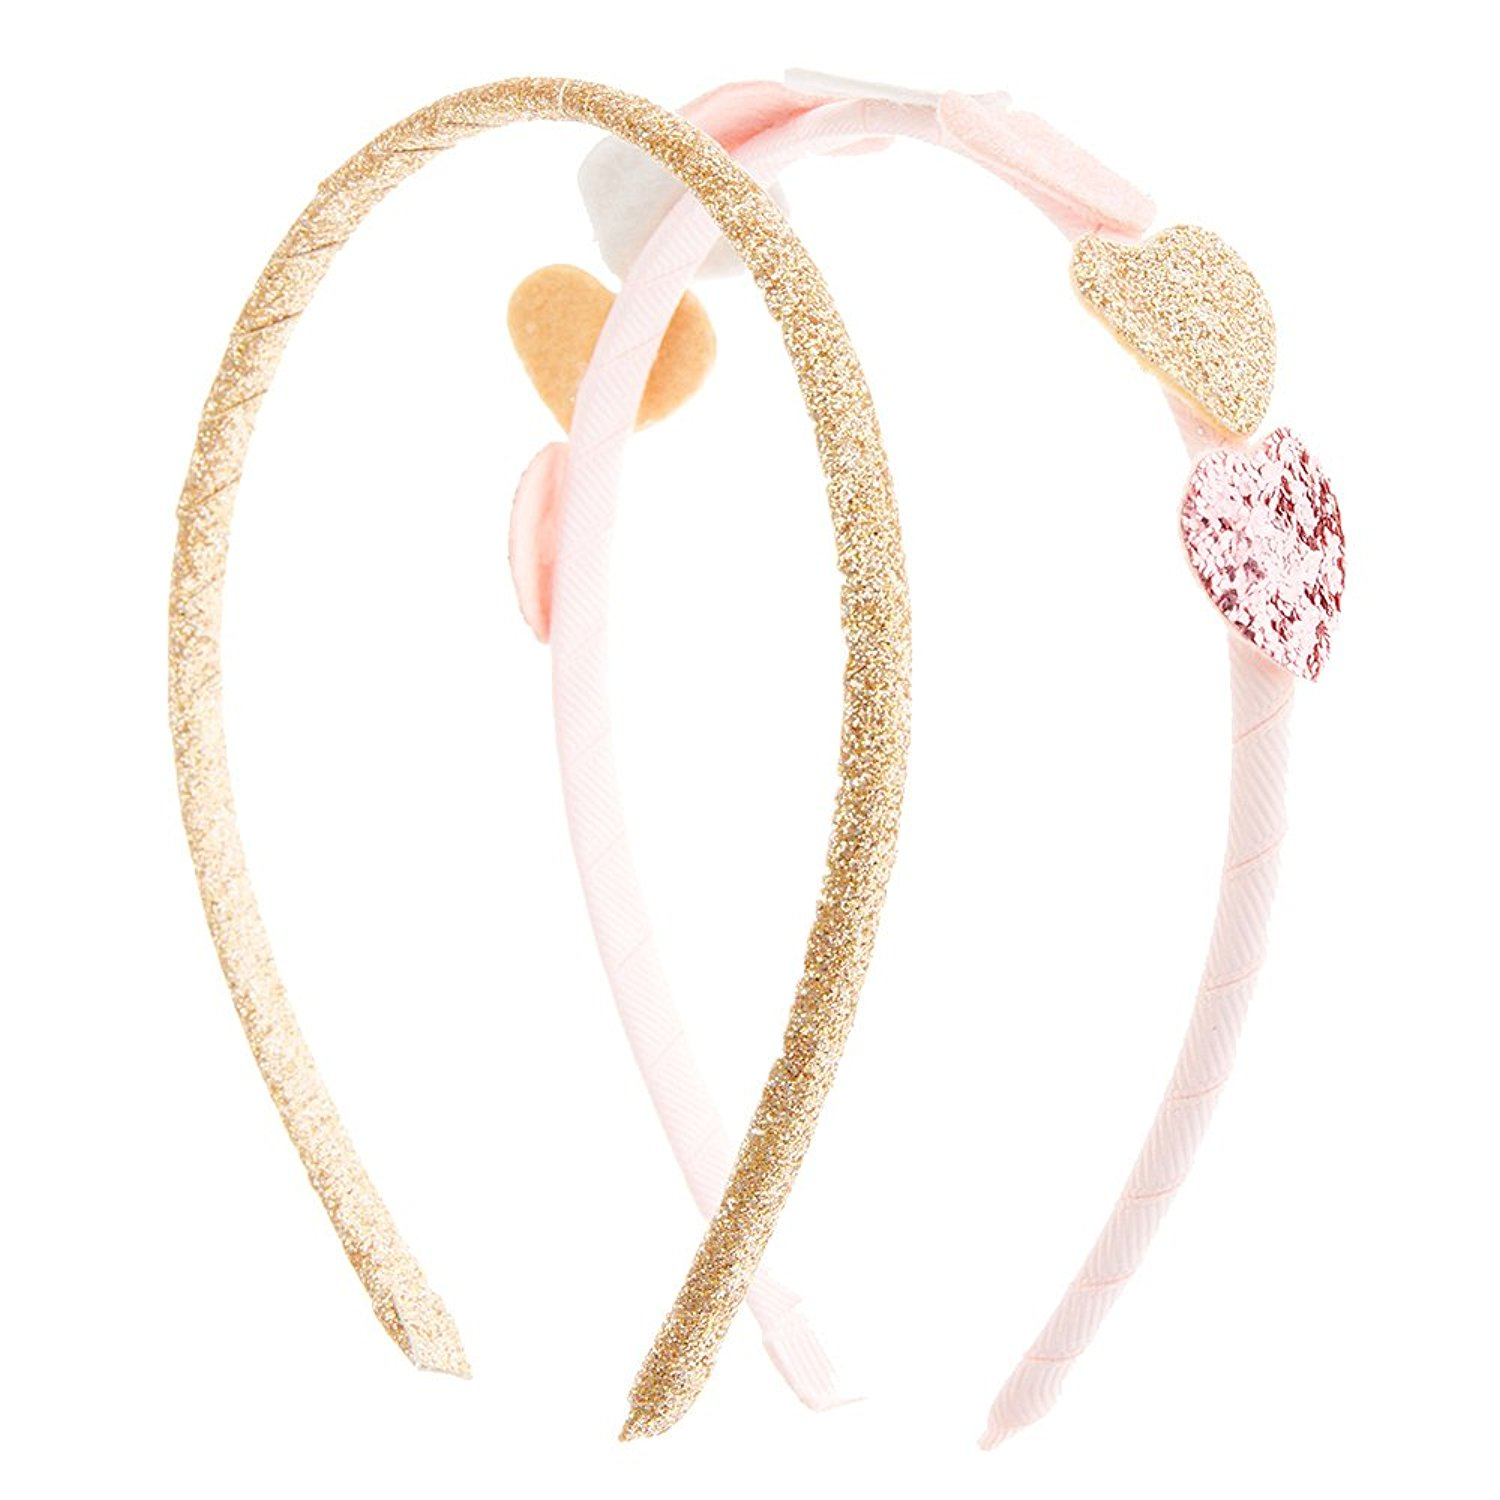 Claire s Accessories Girls Kids Pink and Gold Glitter Heart Headbands Set  ... 542ab908117